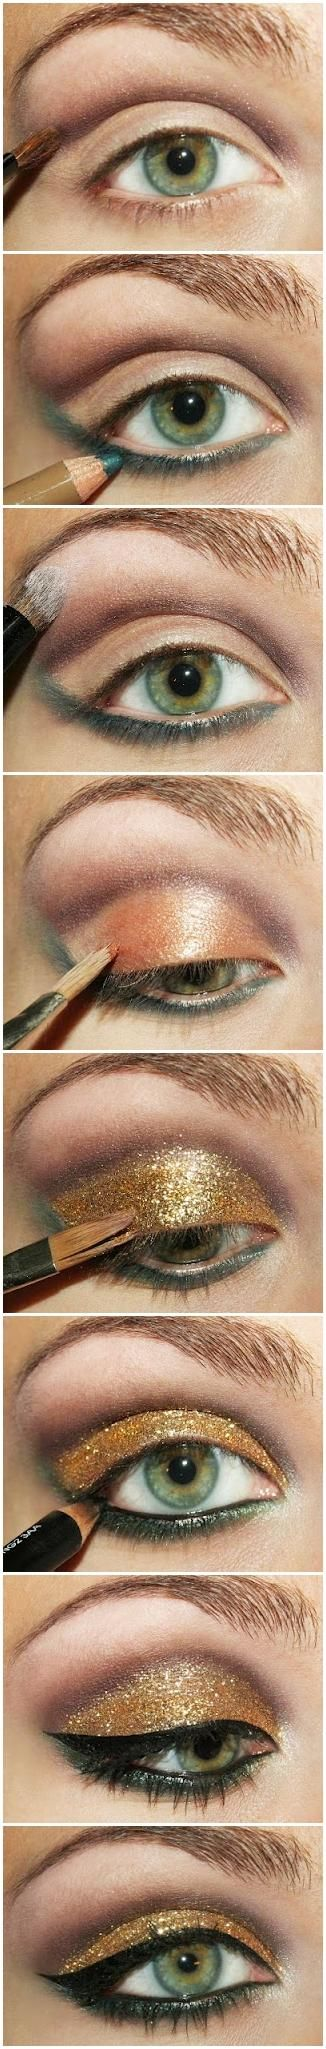 .: Eye Makeup, Eye Shadows, Dramatic Eye, Golden Eye, Eyeshadows, Eyemakeup, Green Eye, New Years, Gold Eye